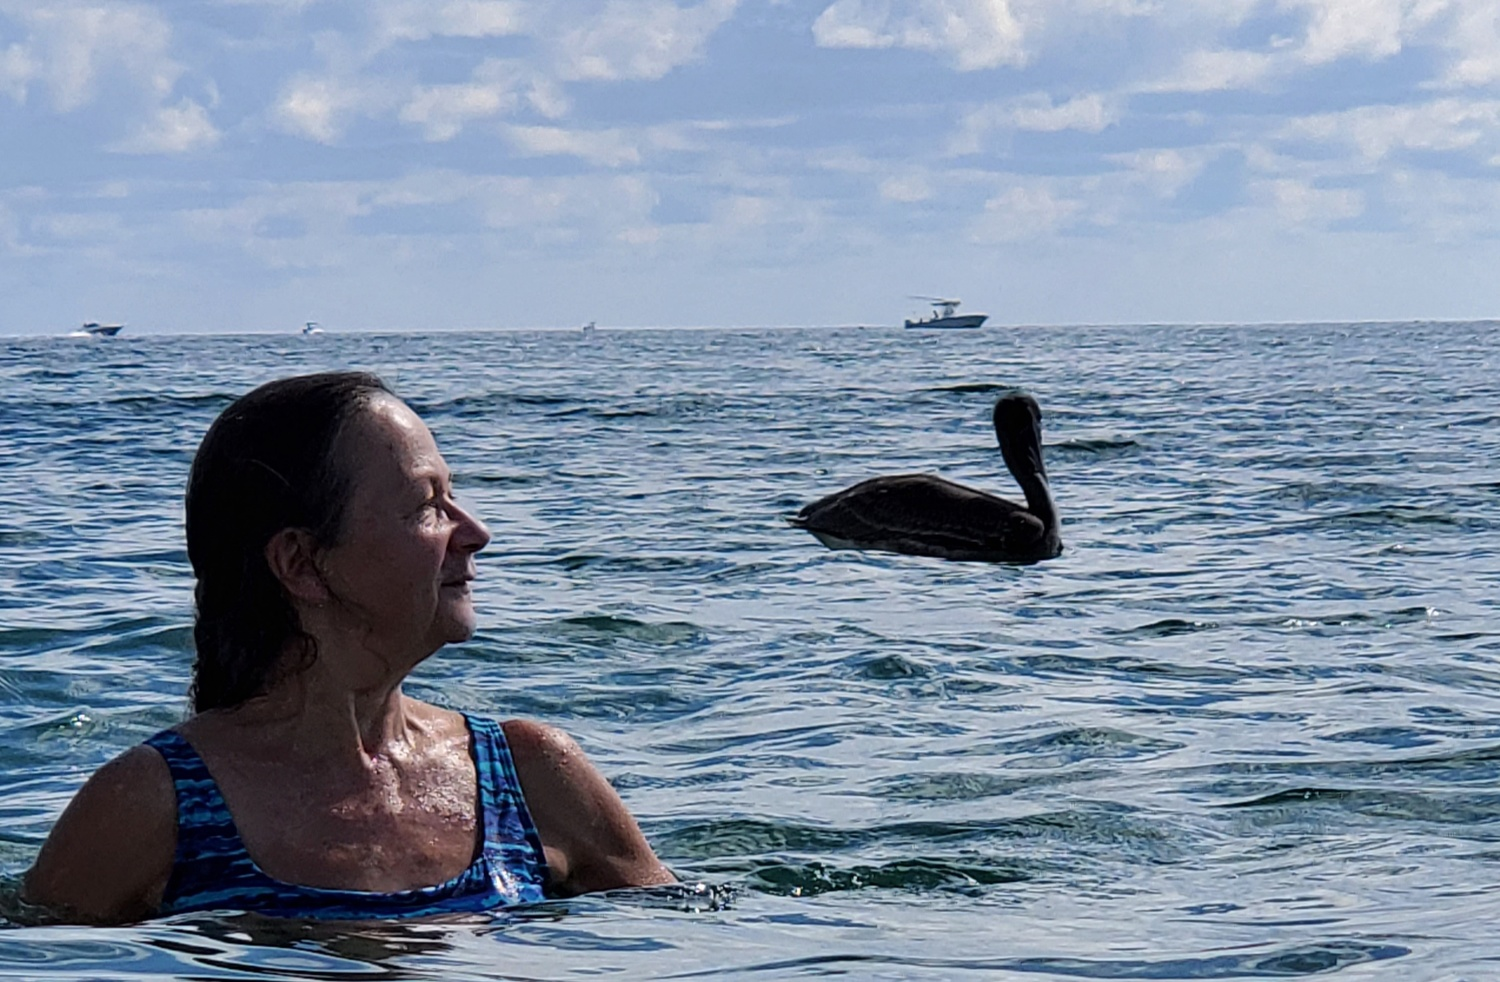 Pelican Summer by Kathy DITTON